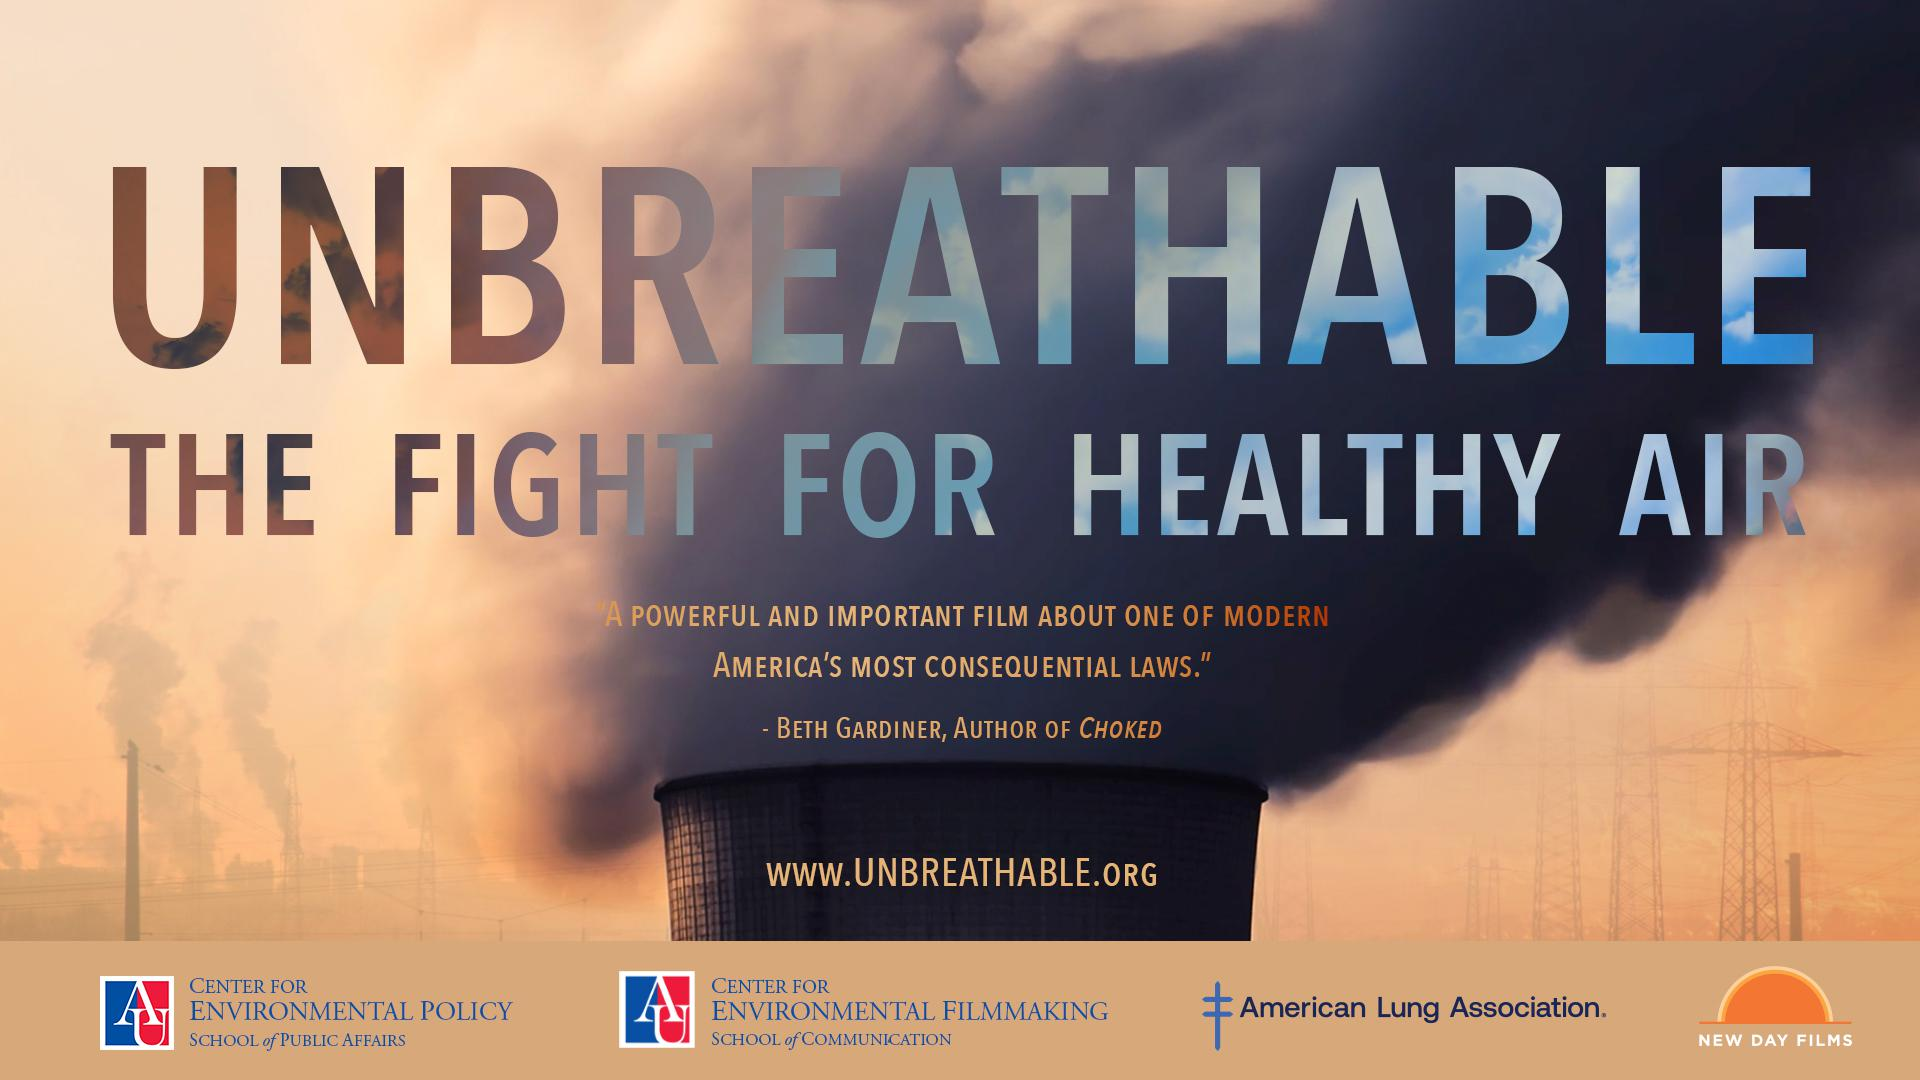 Unbreathable: The Fight for Healthy Air